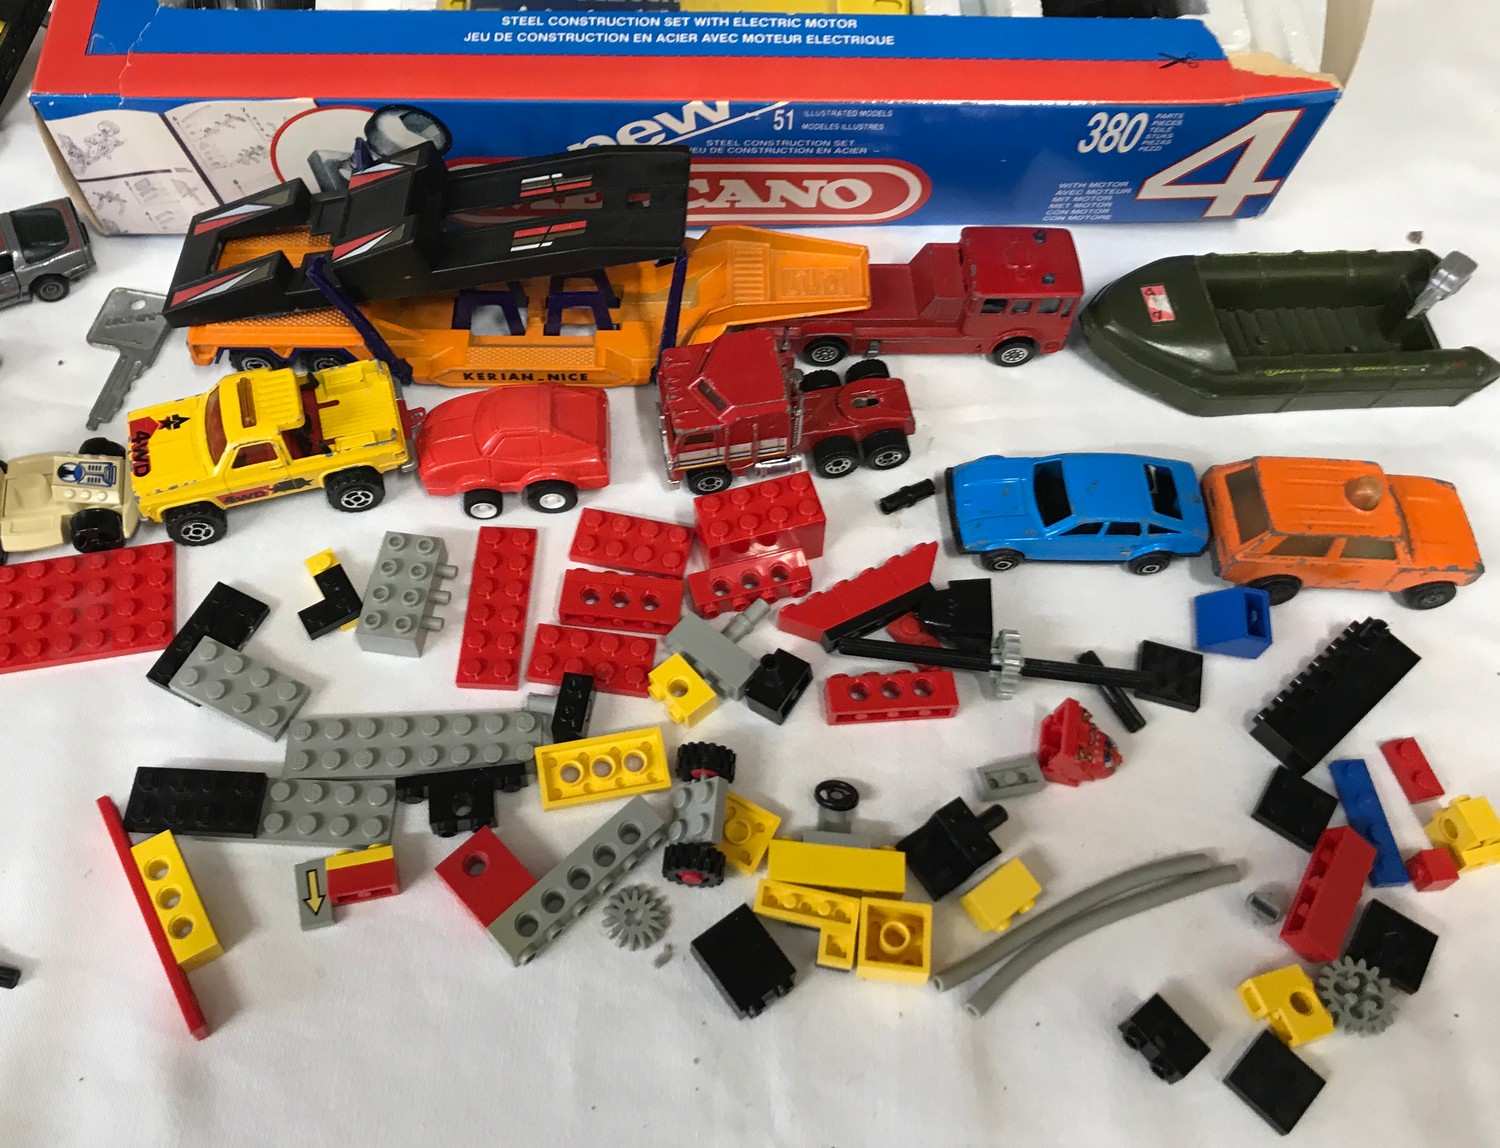 Meccano set number 4, boxed, assorted Lego pieces and plastic vehicles, playworn.Condition - Image 3 of 4